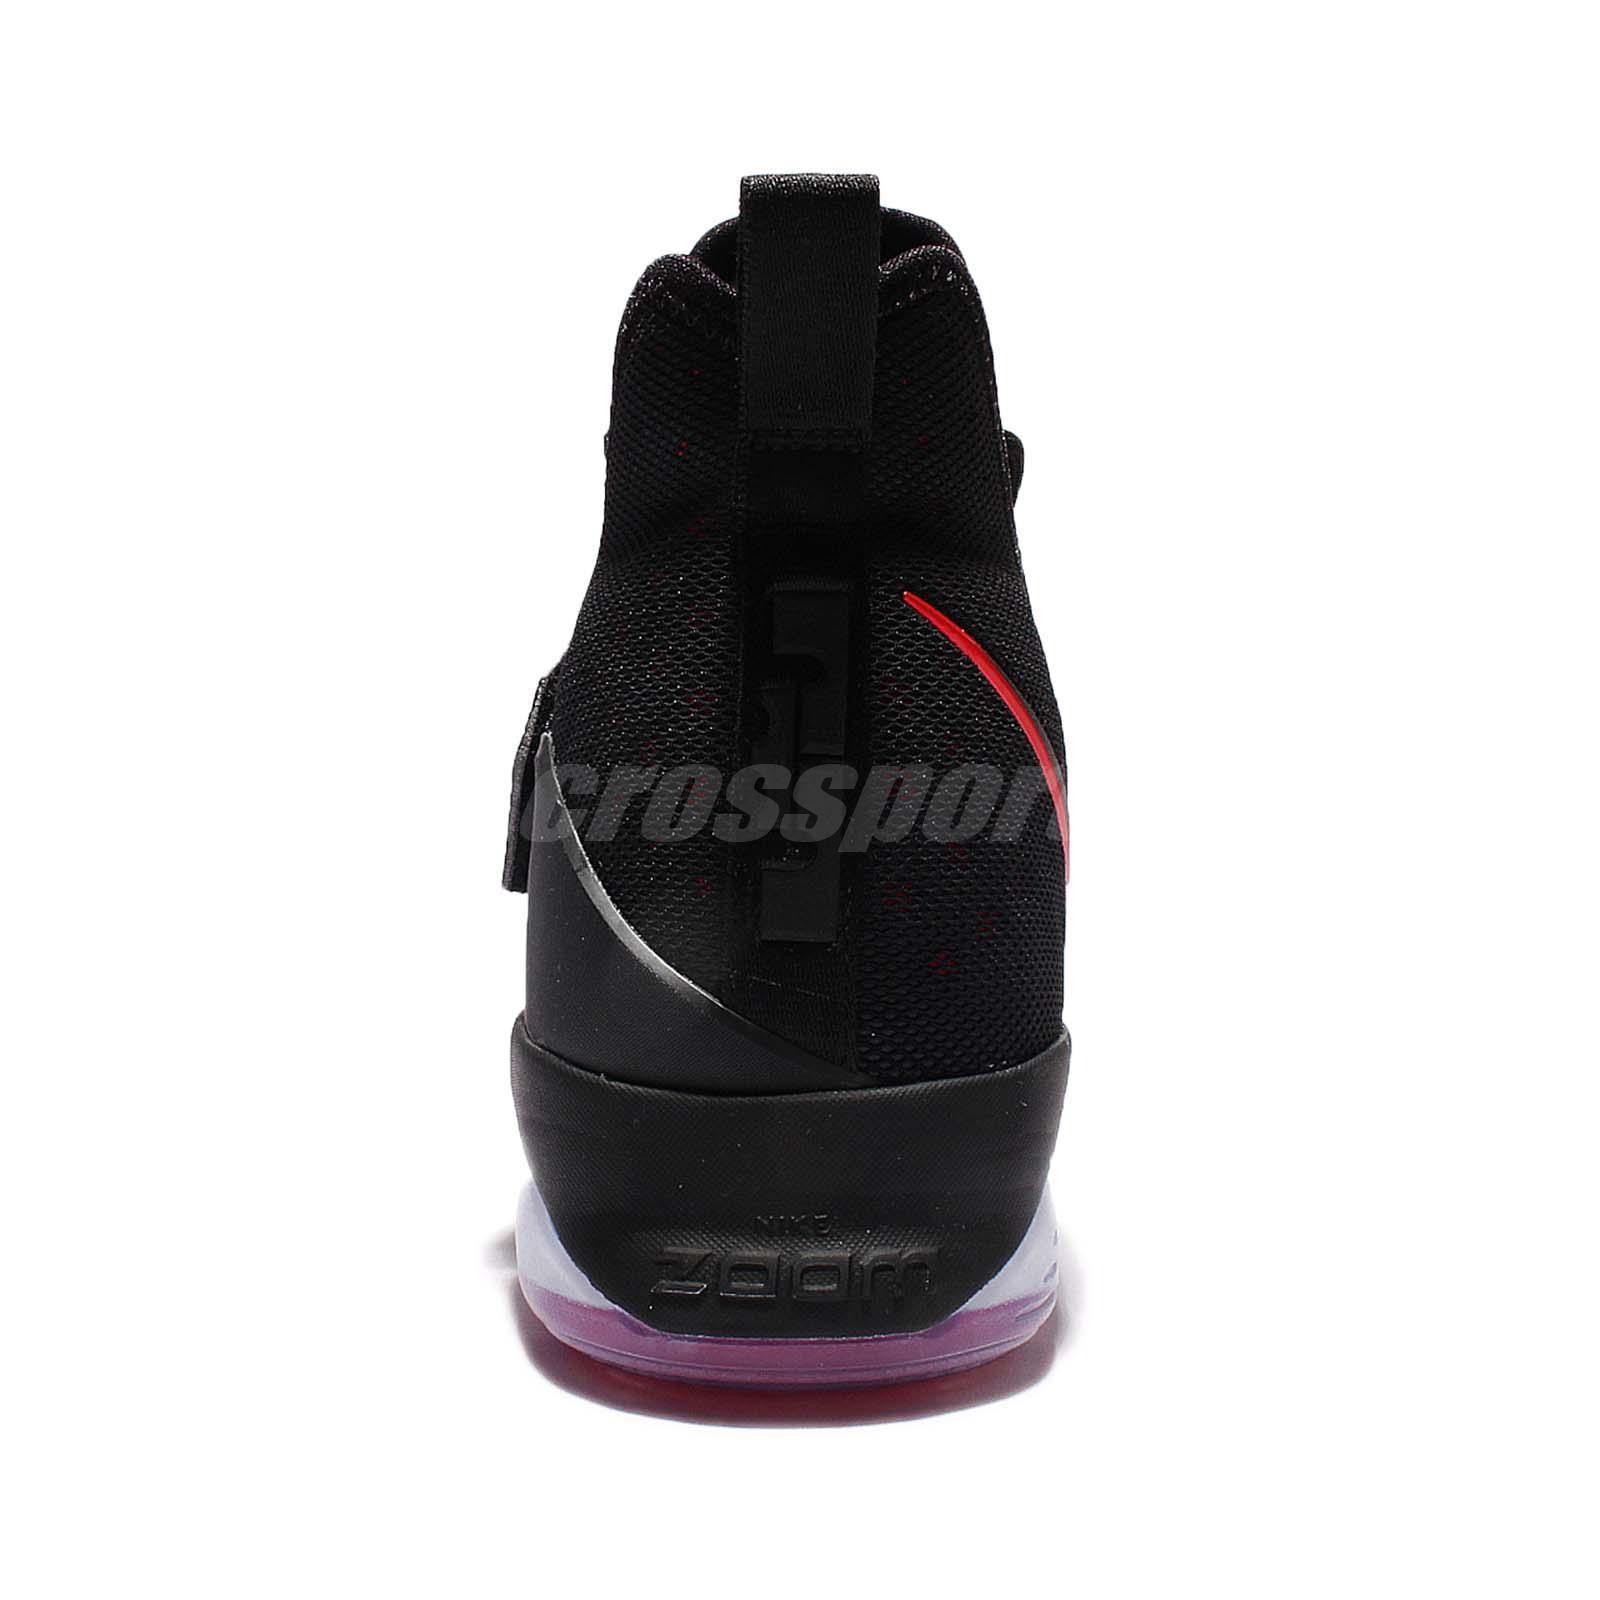 premium selection 3d05a 6bb45 Nike Lebron 14 Bred - Heel - WearTesters